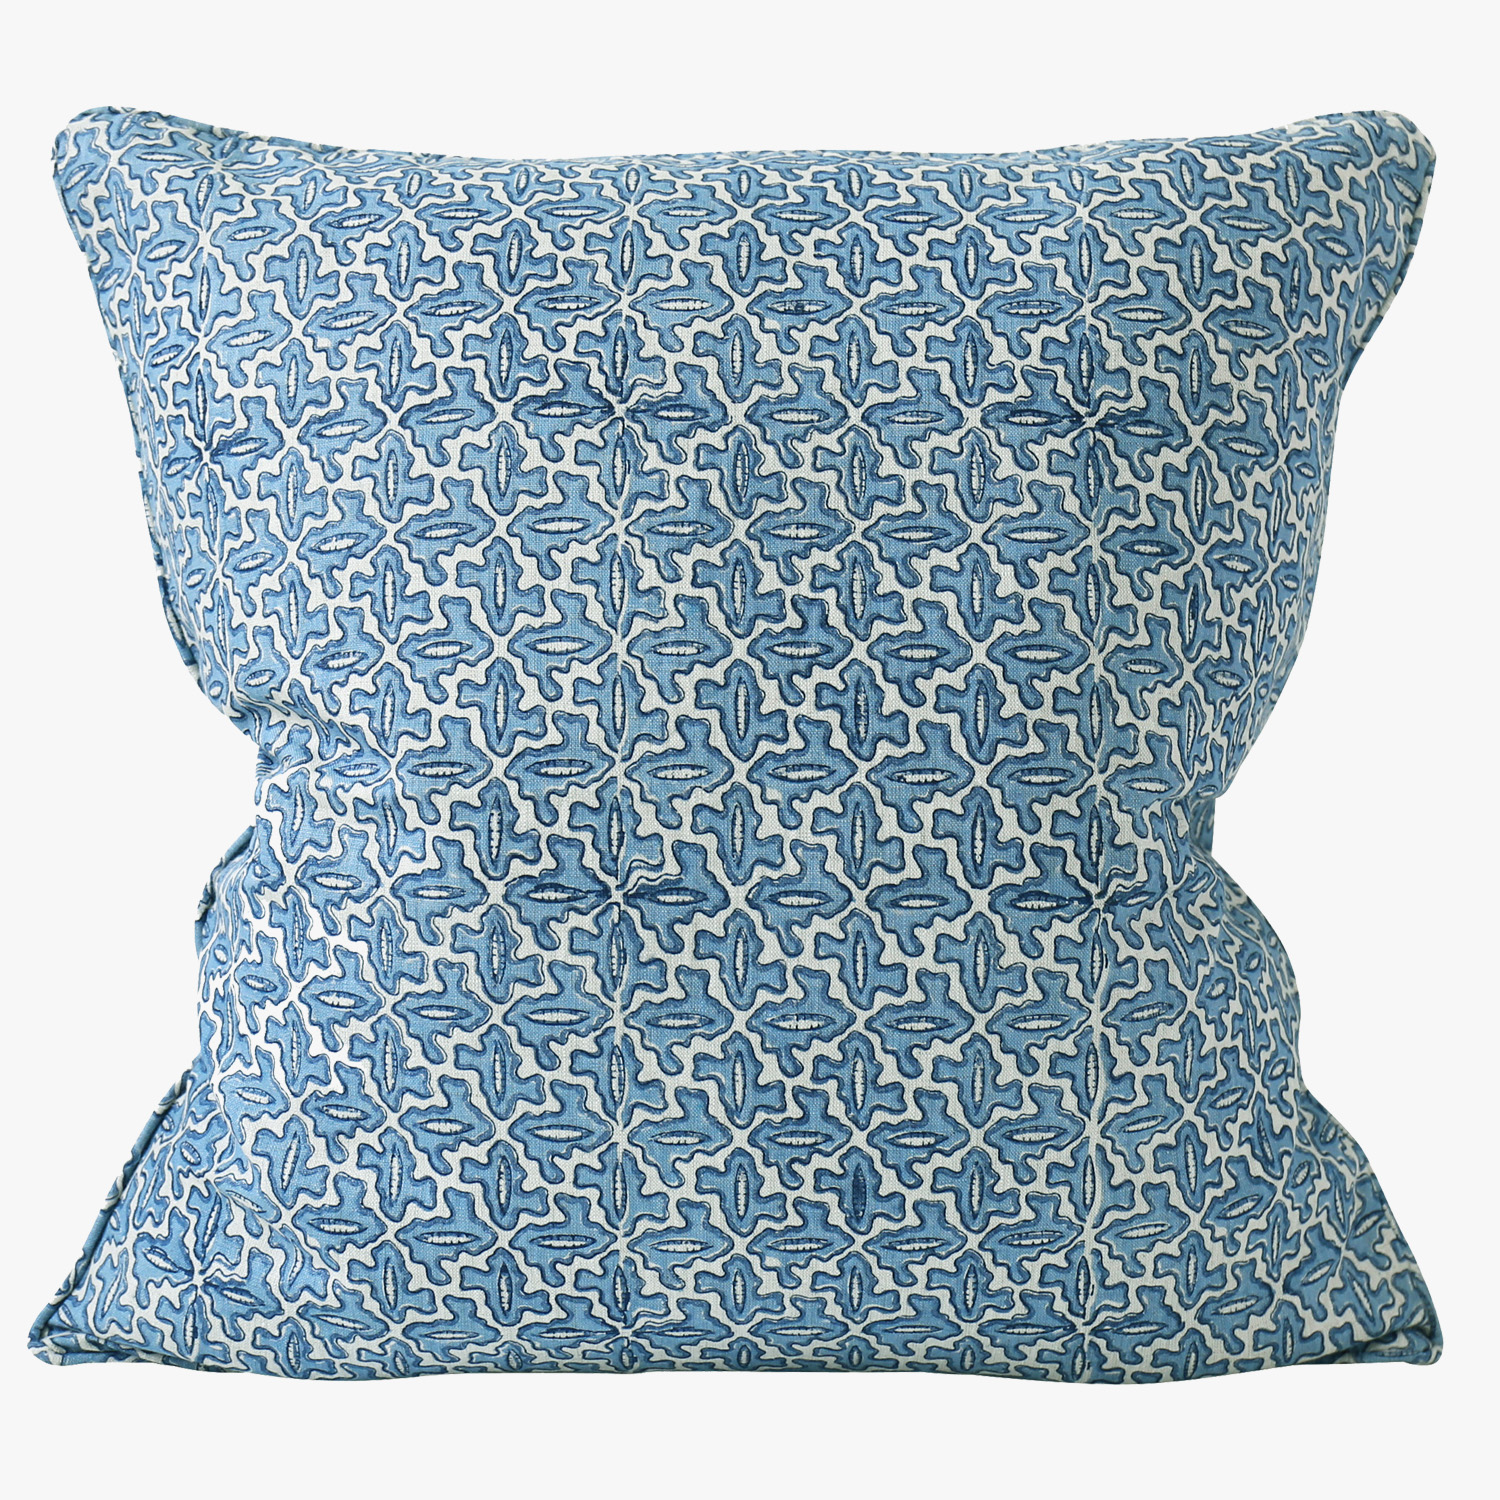 Arles-Riviera-Pillow-Cover.jpg